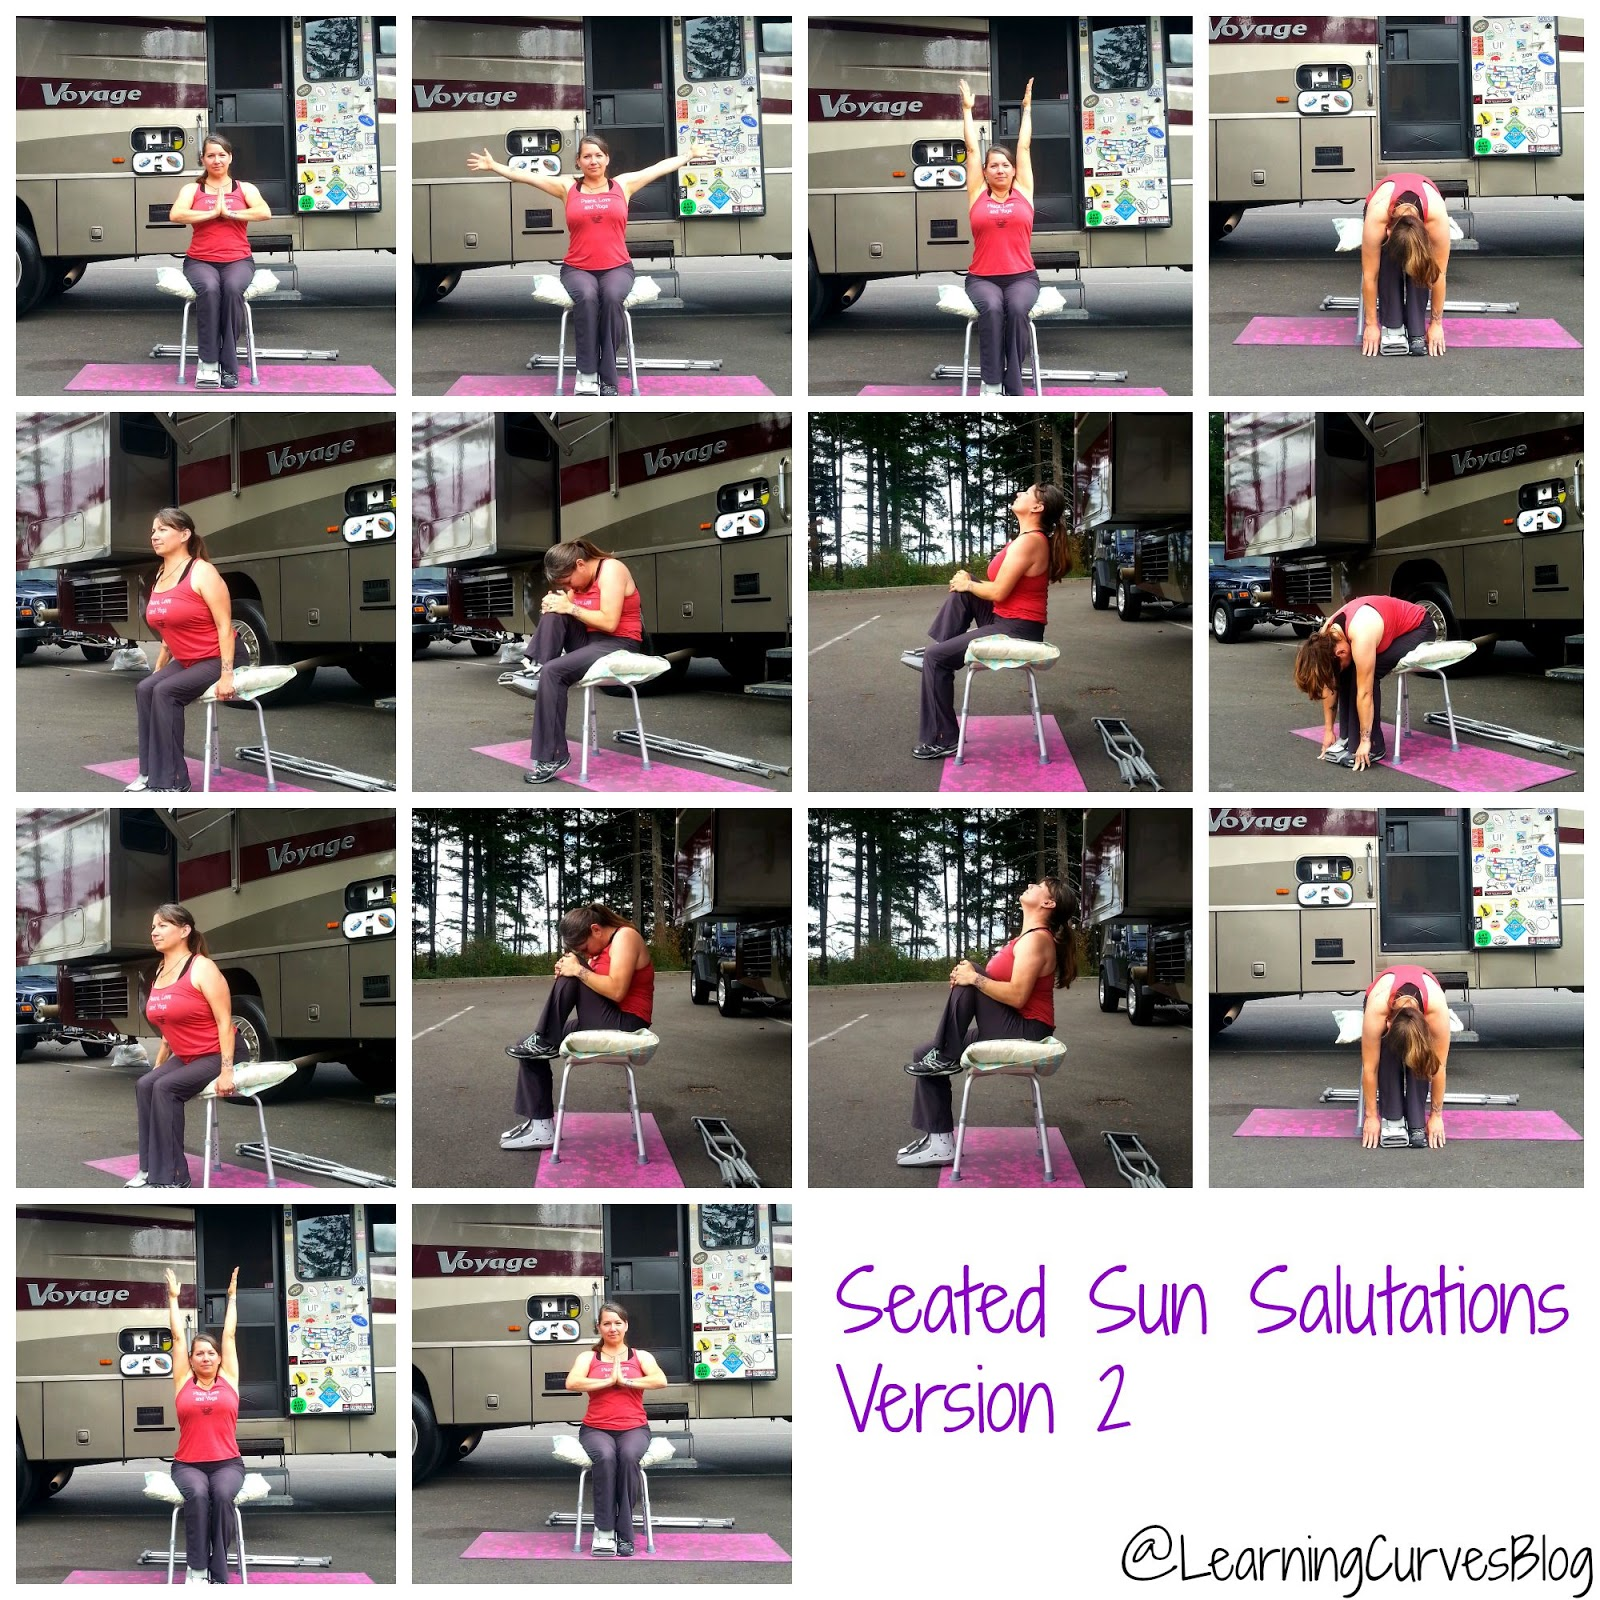 Learning Curves Modified Chair Yoga Sun Salutations With A Broken Ankle Version 2